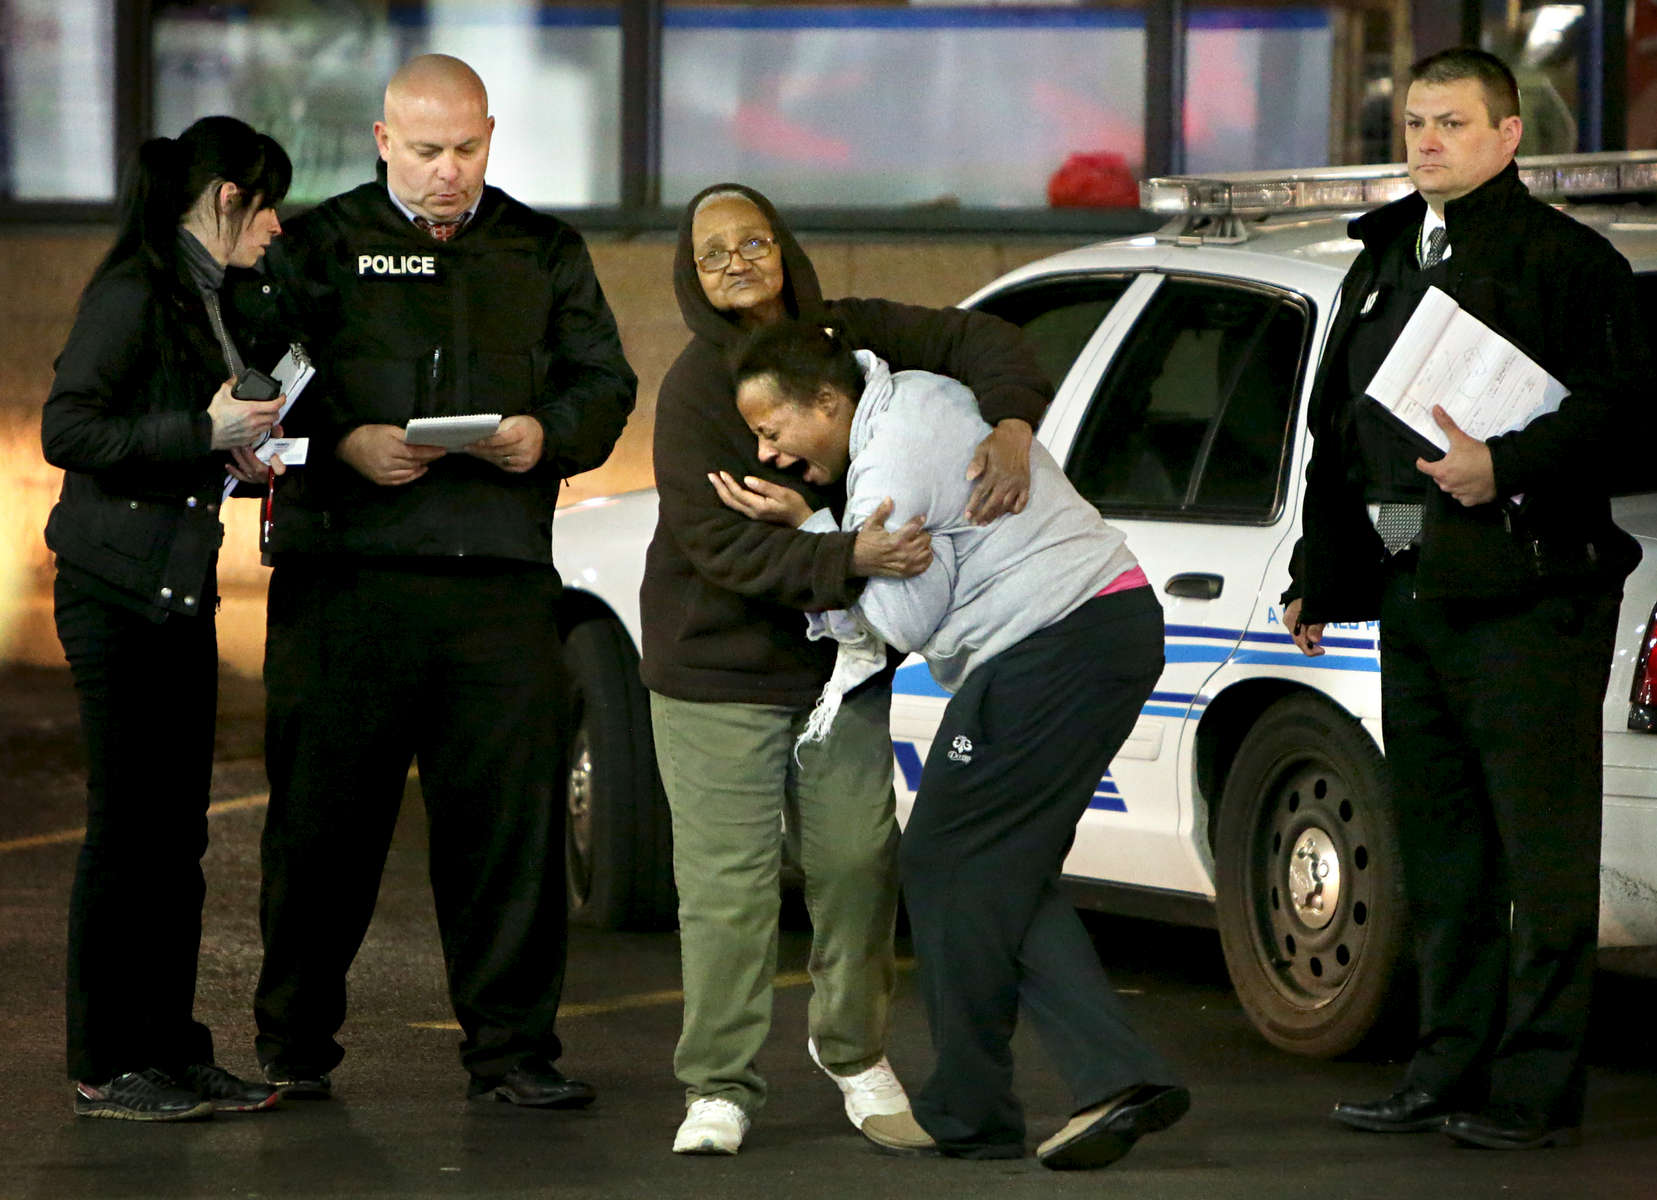 Toni Martin (center) cries out on Wednesday, Dec. 24, 2014 as she talks to police at the scene where her son Antonio Martin, 18, was fatally shot Tuesday Dec. 23, 2014 at a Mobil gas station on North Hanley Road in Berkeley. Photo By David Carson, dcarson@post-dispatch.com